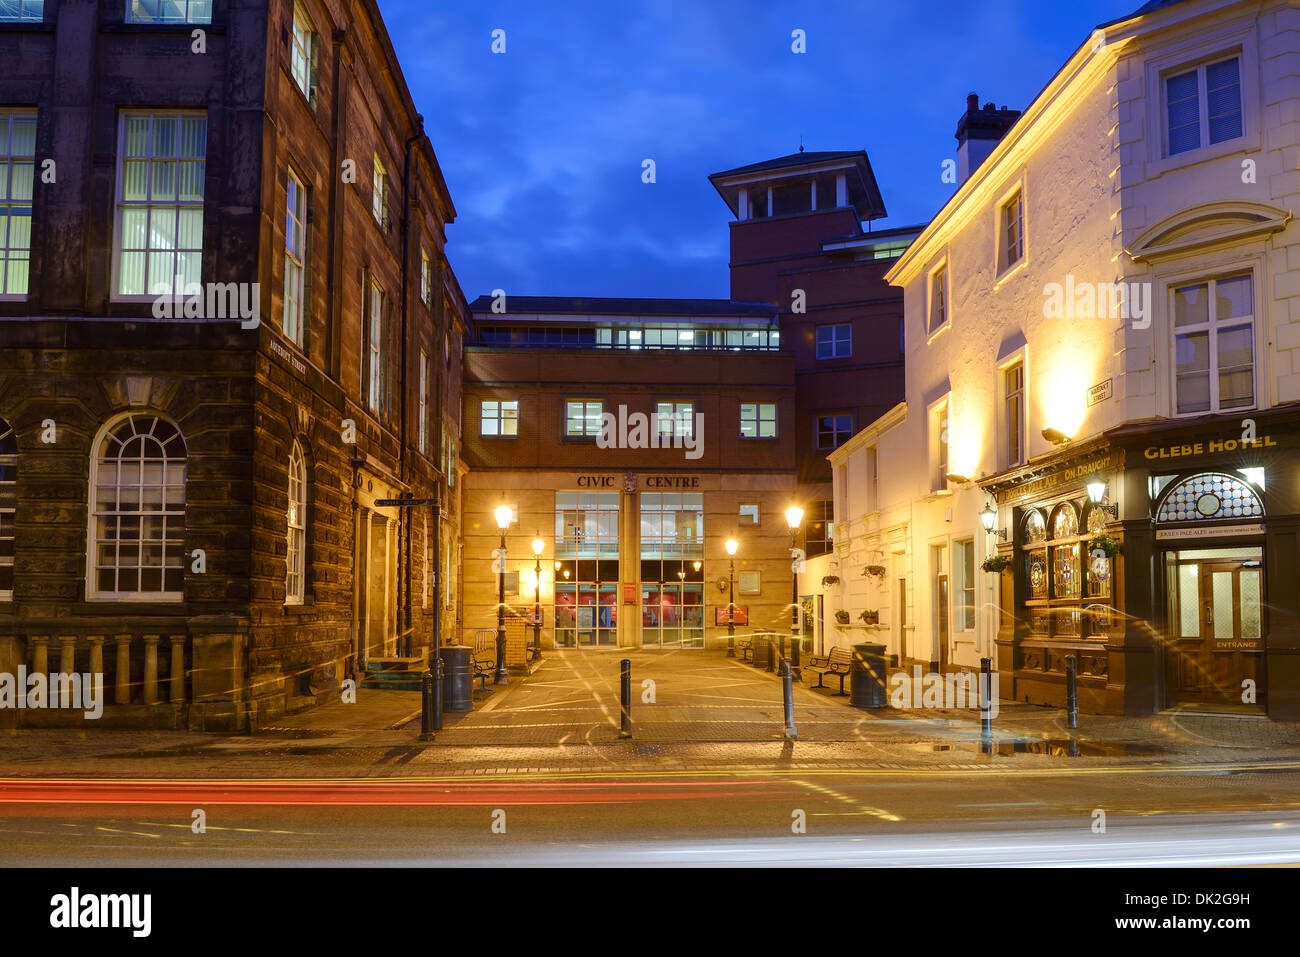 The Civic Centre council offices in Stoke on Trent UK - Stock Image